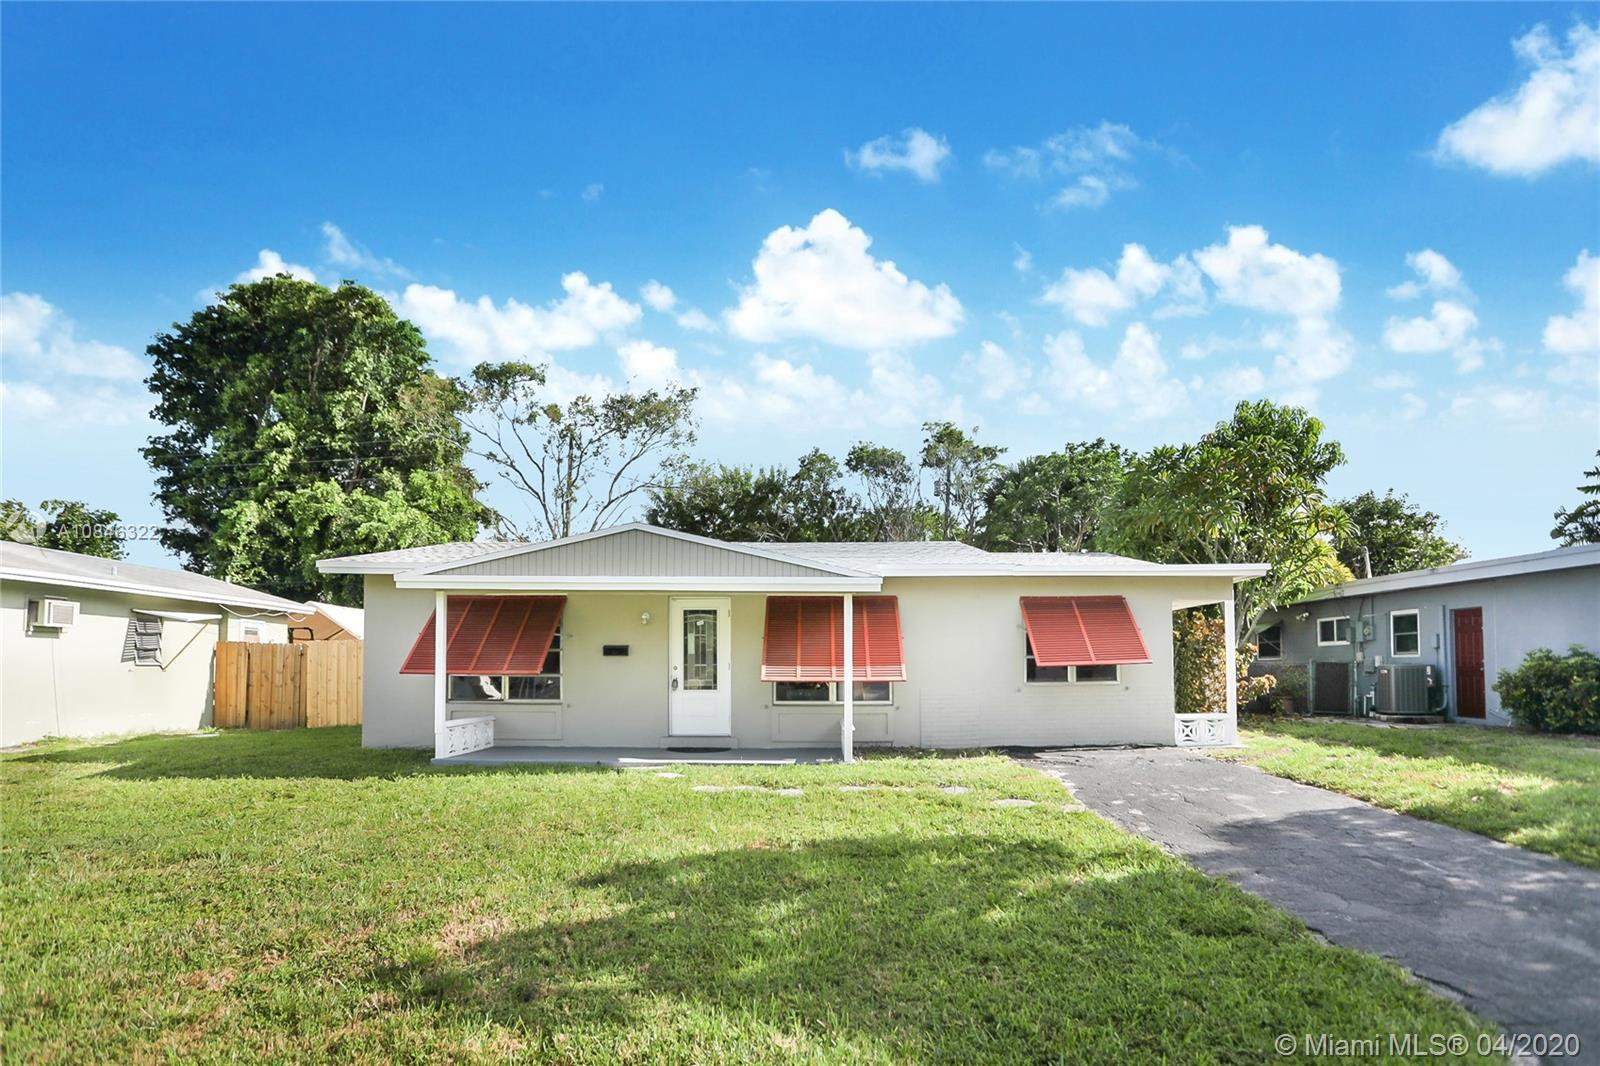 BEAUTIFULLY FULLY REMODELED 3/2 HOME IN THE HEART OF OAKLAND PARK.  HOME LARGER THAN TAX ROLL (1755 SQ). PERFECT TURN-KEY STARTER HOME. HOME FEATURES ALL HURRICANE SHUTTERED WINDOWS AND IMPACT GLASS FRONT DOOR, BRAND NEW SHINGLE ROOF, CENTRAL A/C UNIT, NEW BATHROOMS, BRAND NEW WASHER AND DRYER TOWER, NEW CUSTOM KITCHEN WITH HIGH-END CABINETS, GRANITE COUNTERTOP, AND BRAND NEW STAINLESS STEEL APPLIANCES.